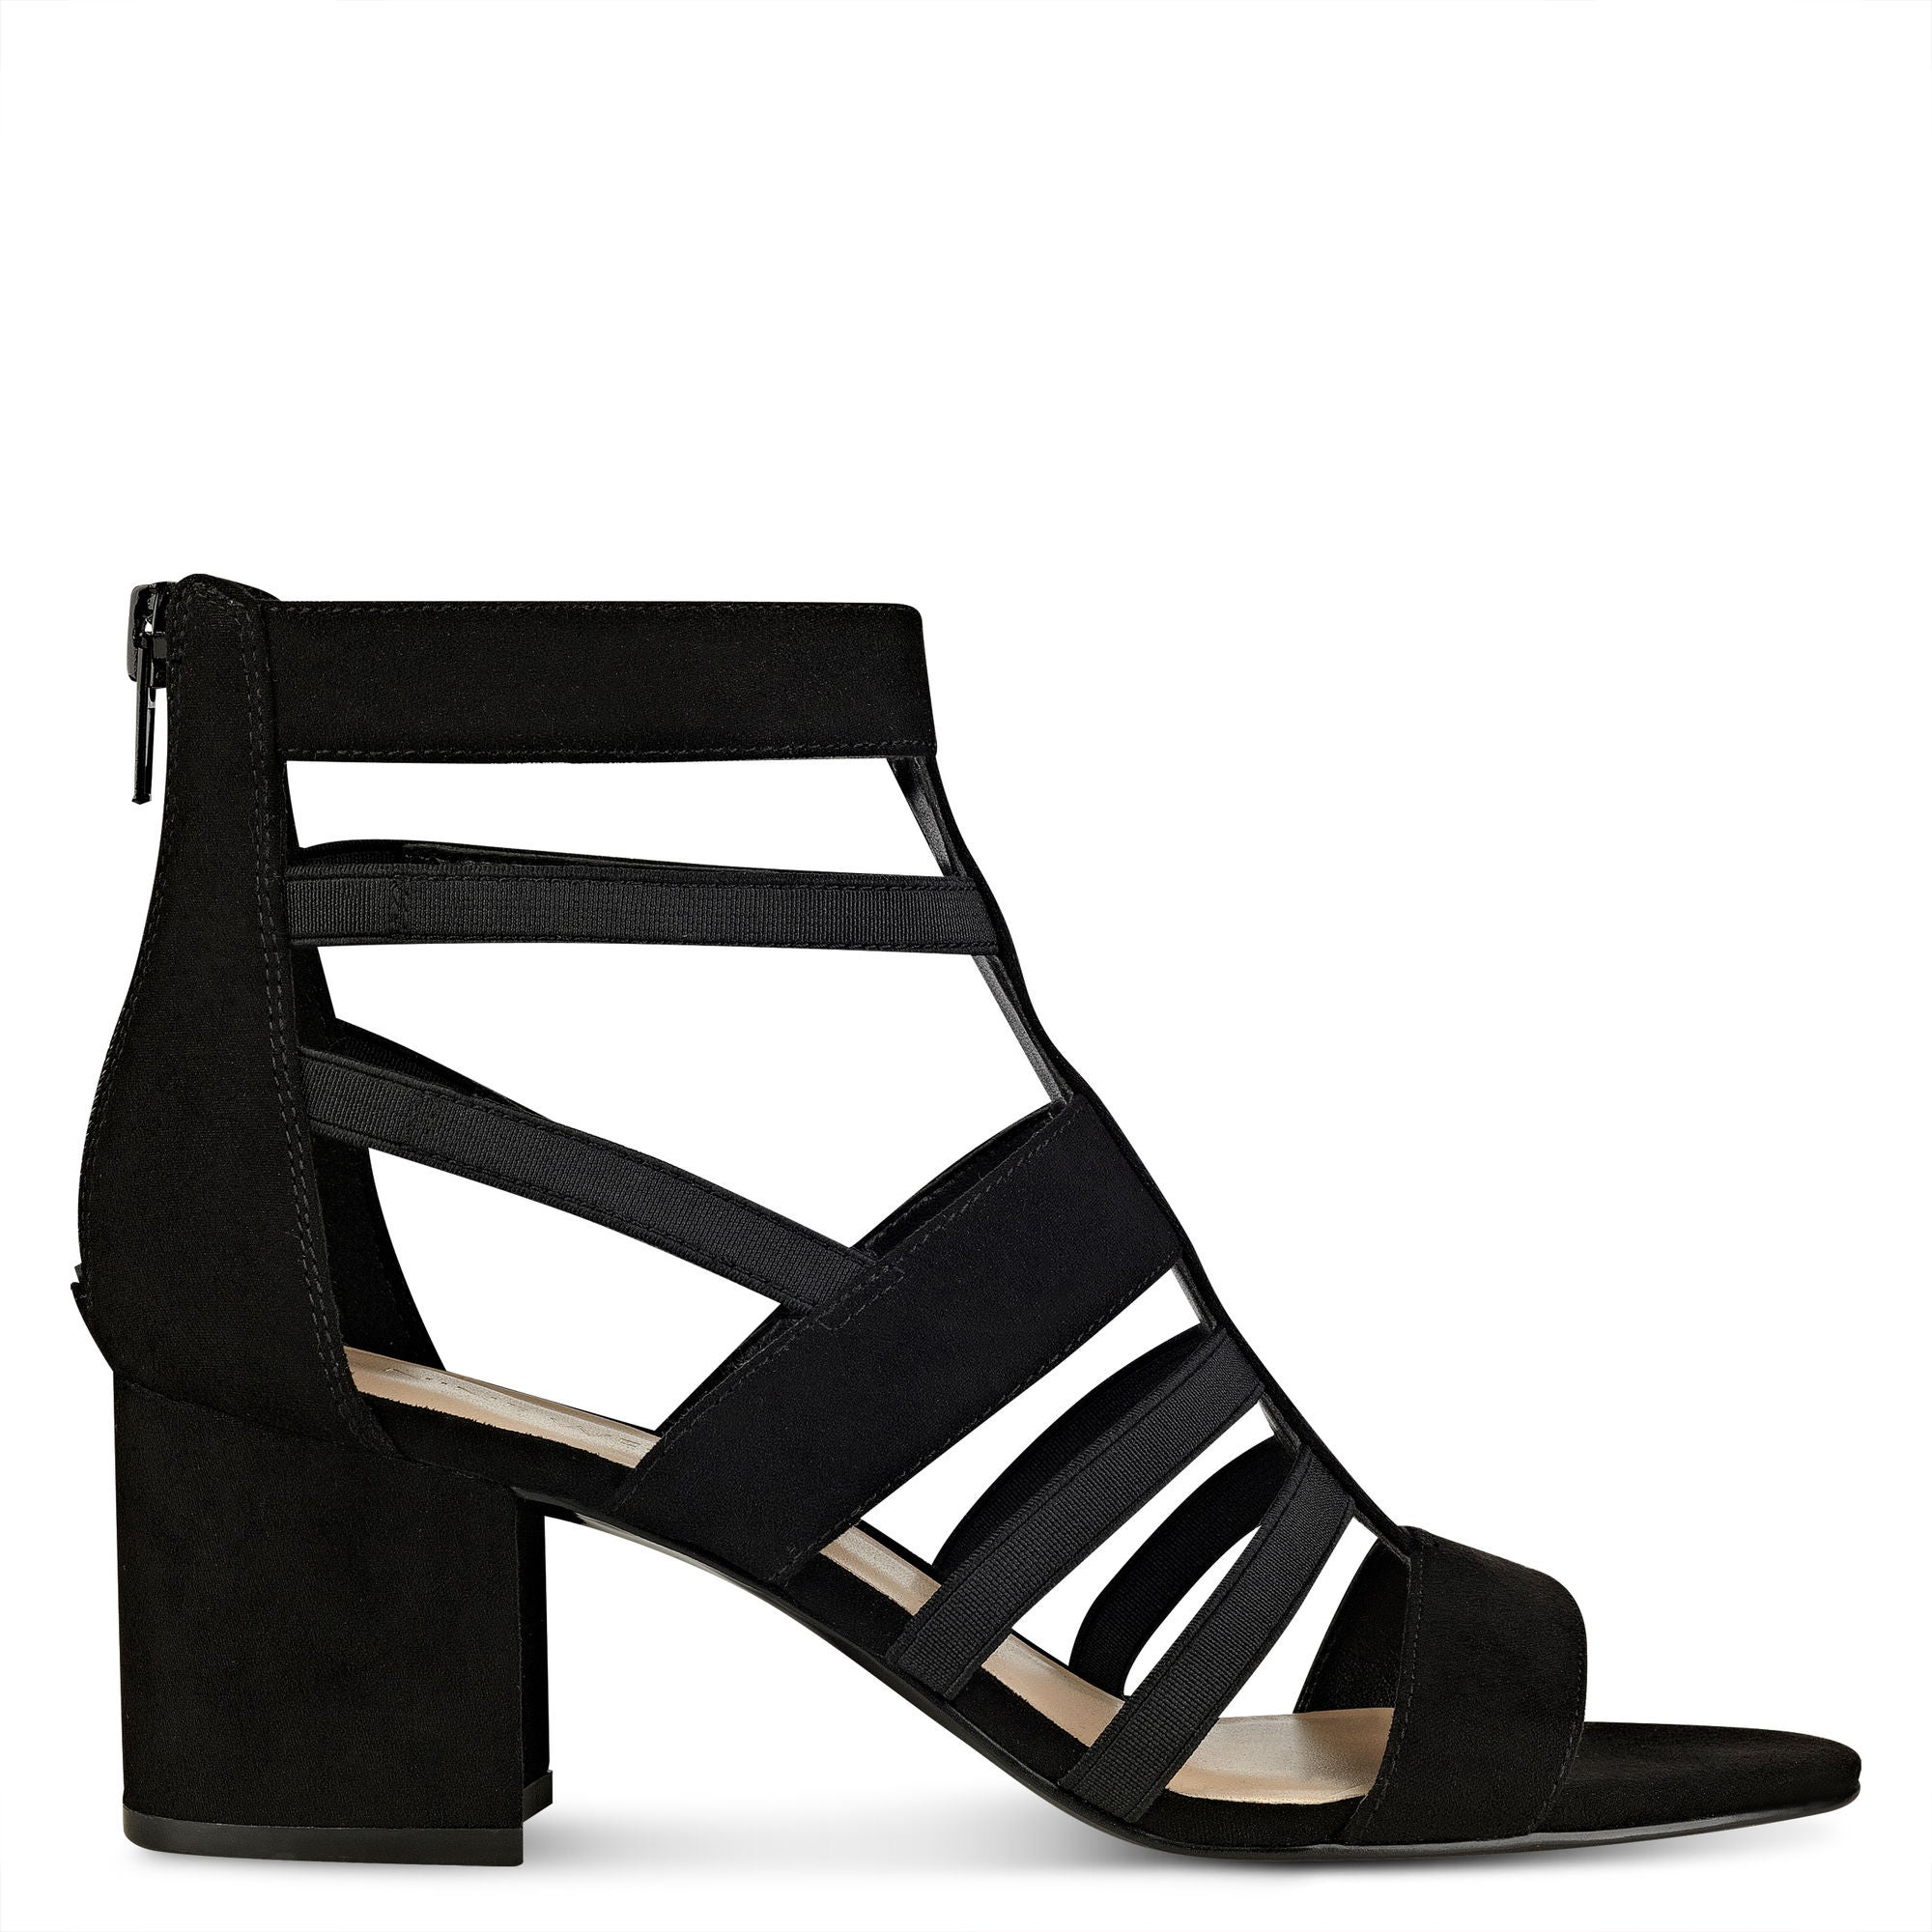 latest fashion classic best deals on 15 Must-Have Shoes for Graduation - Essence